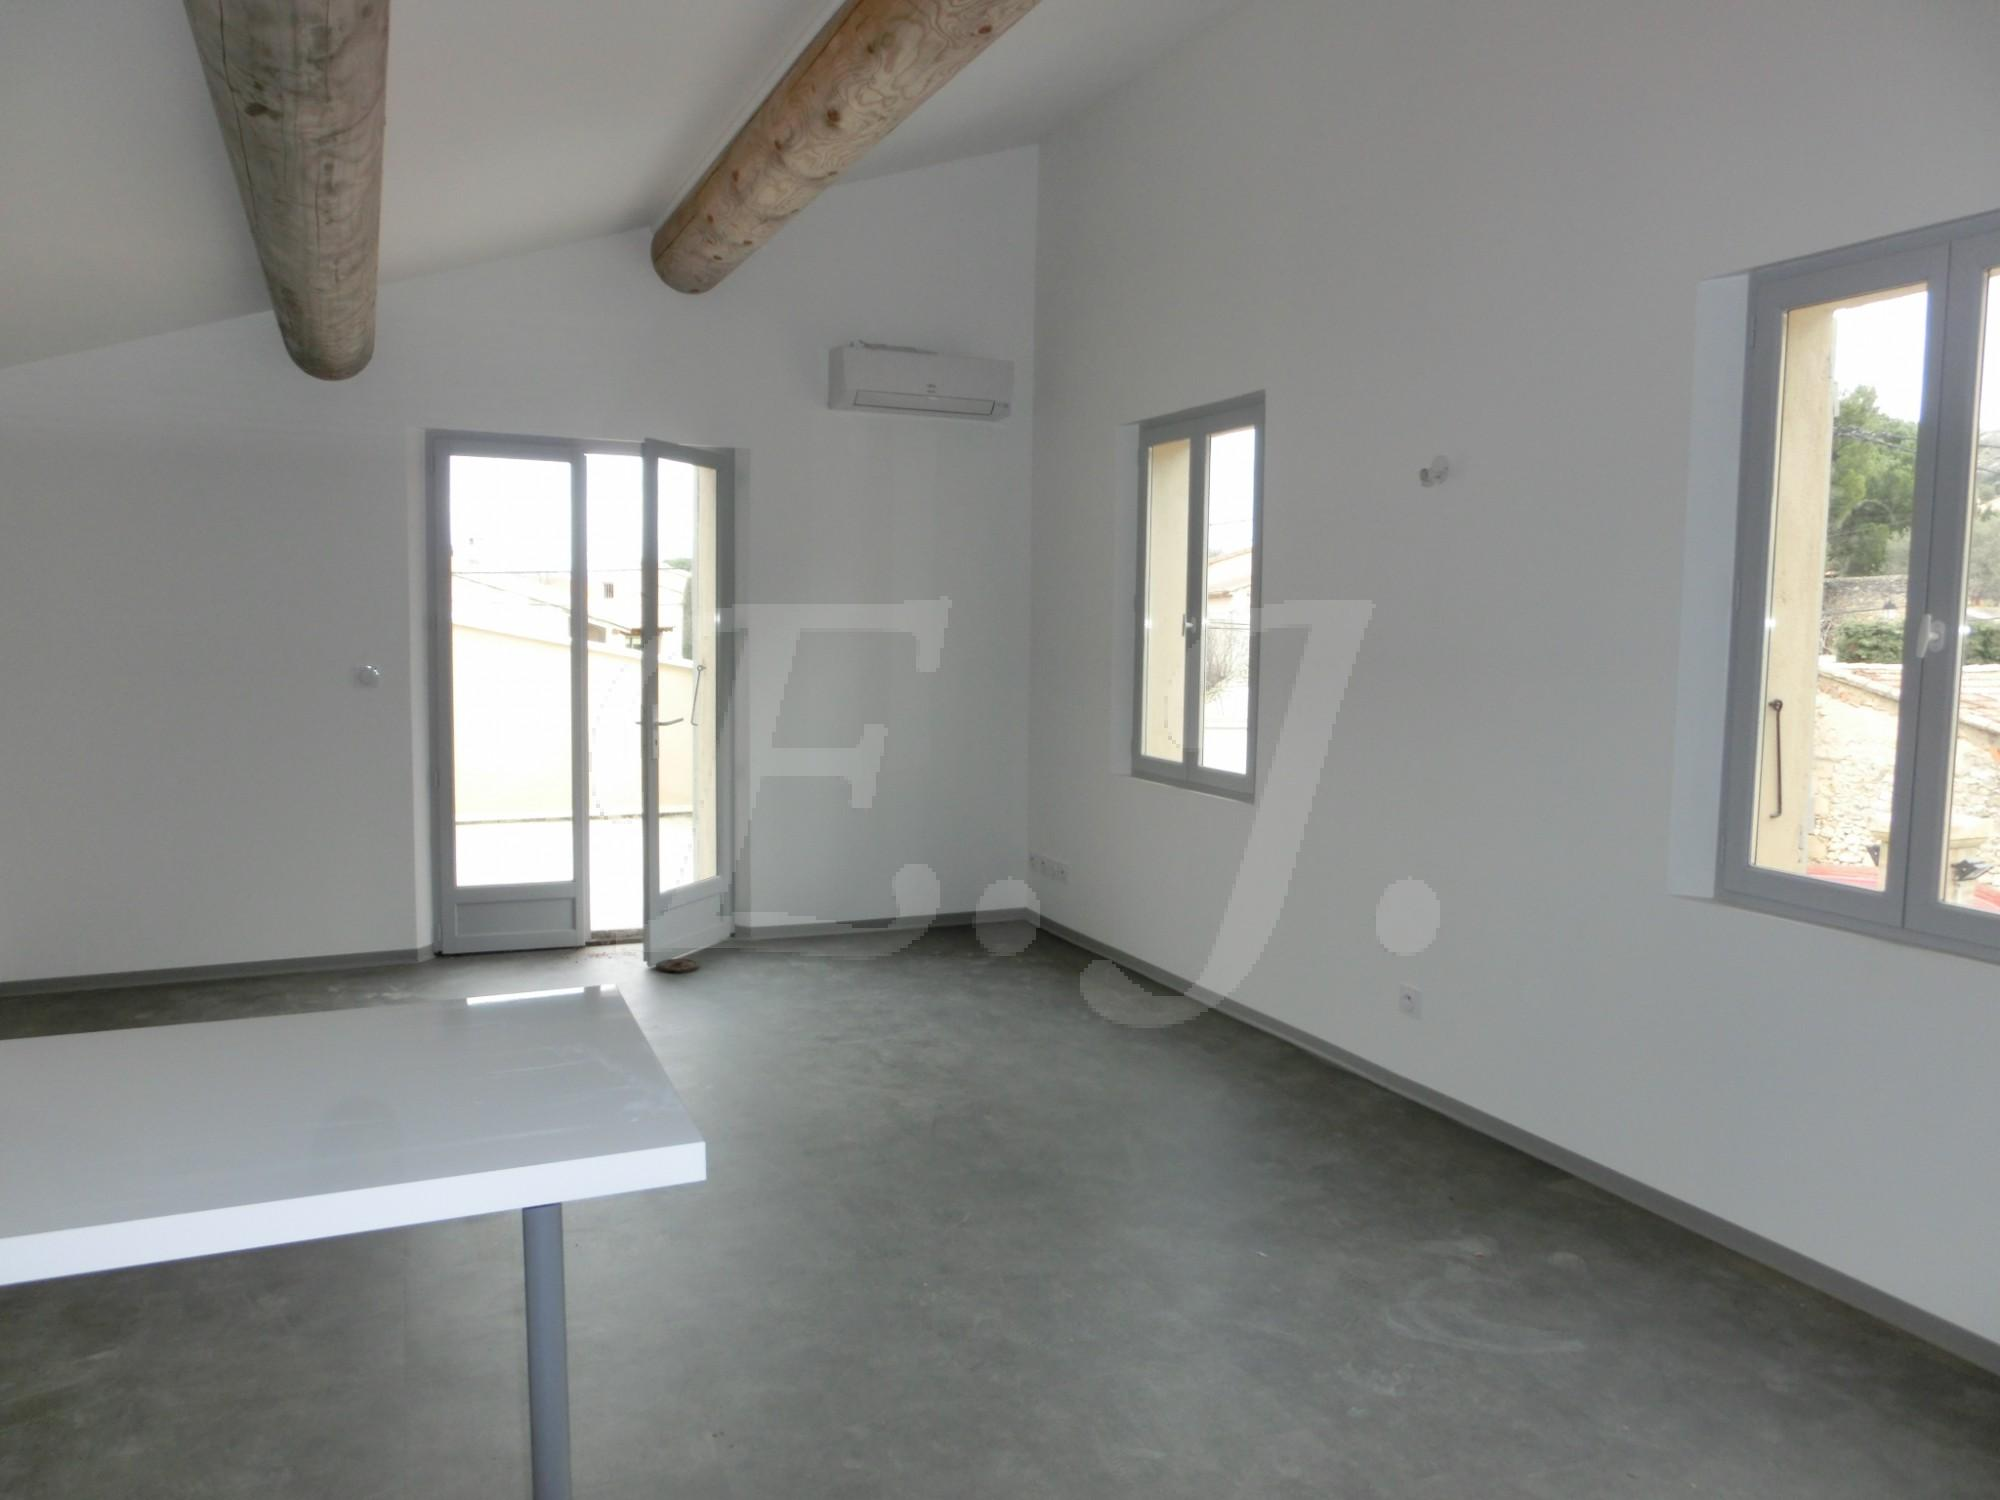 Locations appartement dans village t2 3 f2 3 robion for Site de location appartement